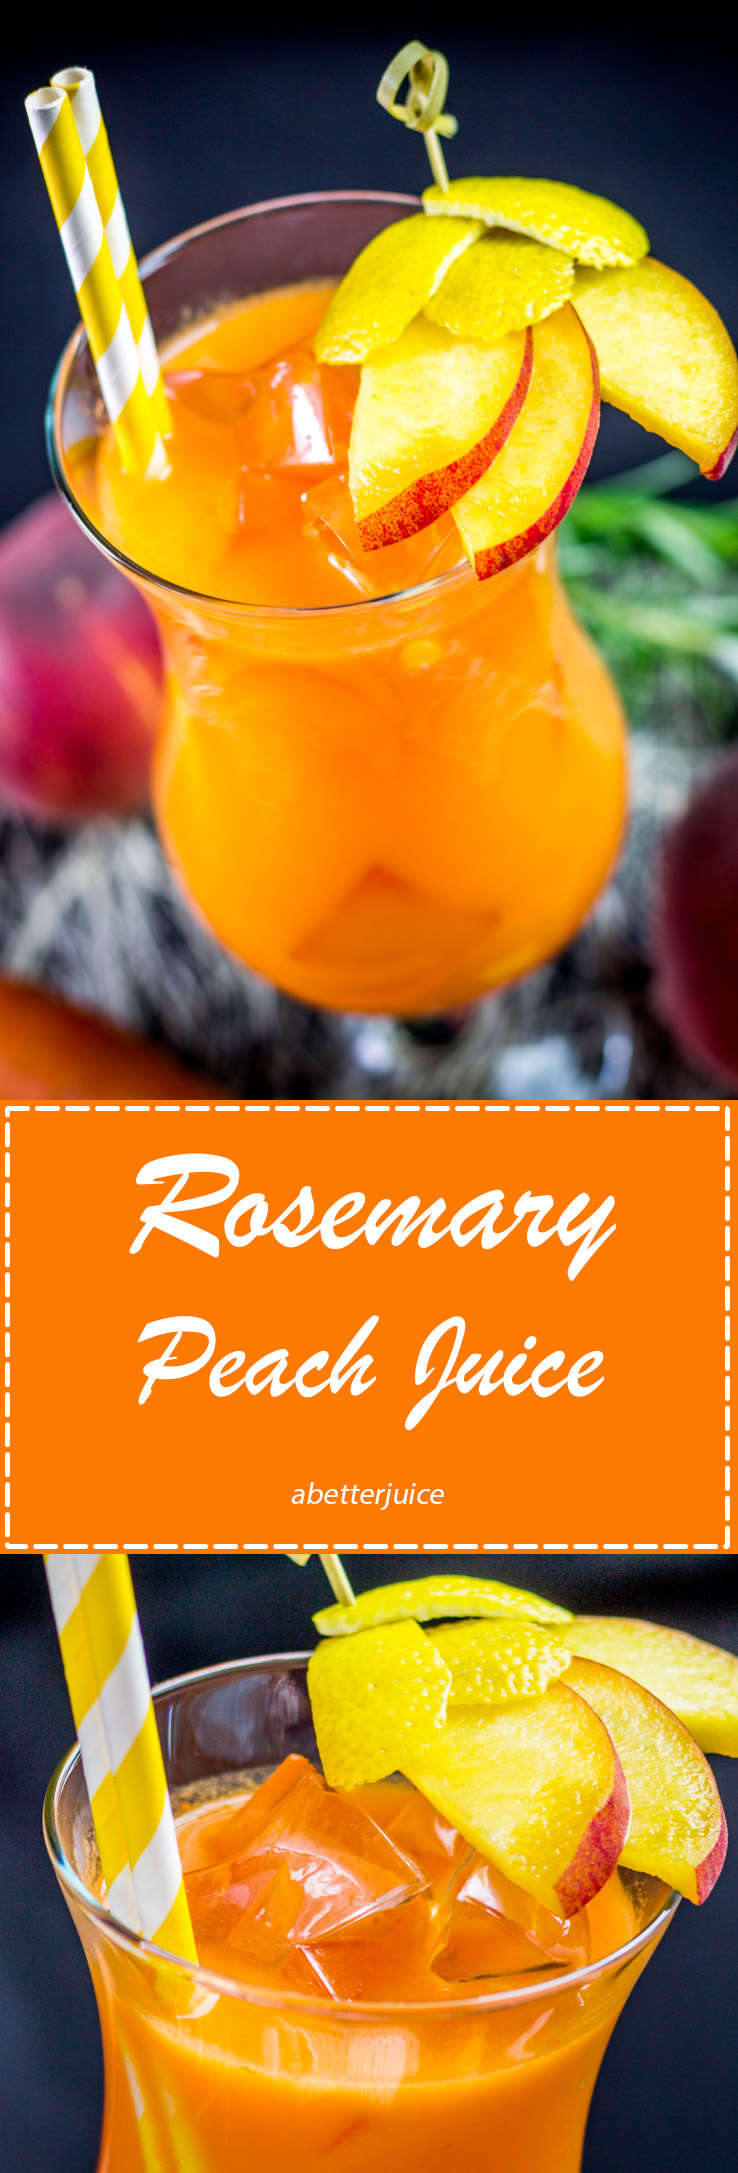 Rosemary Peach Juice Pinterest